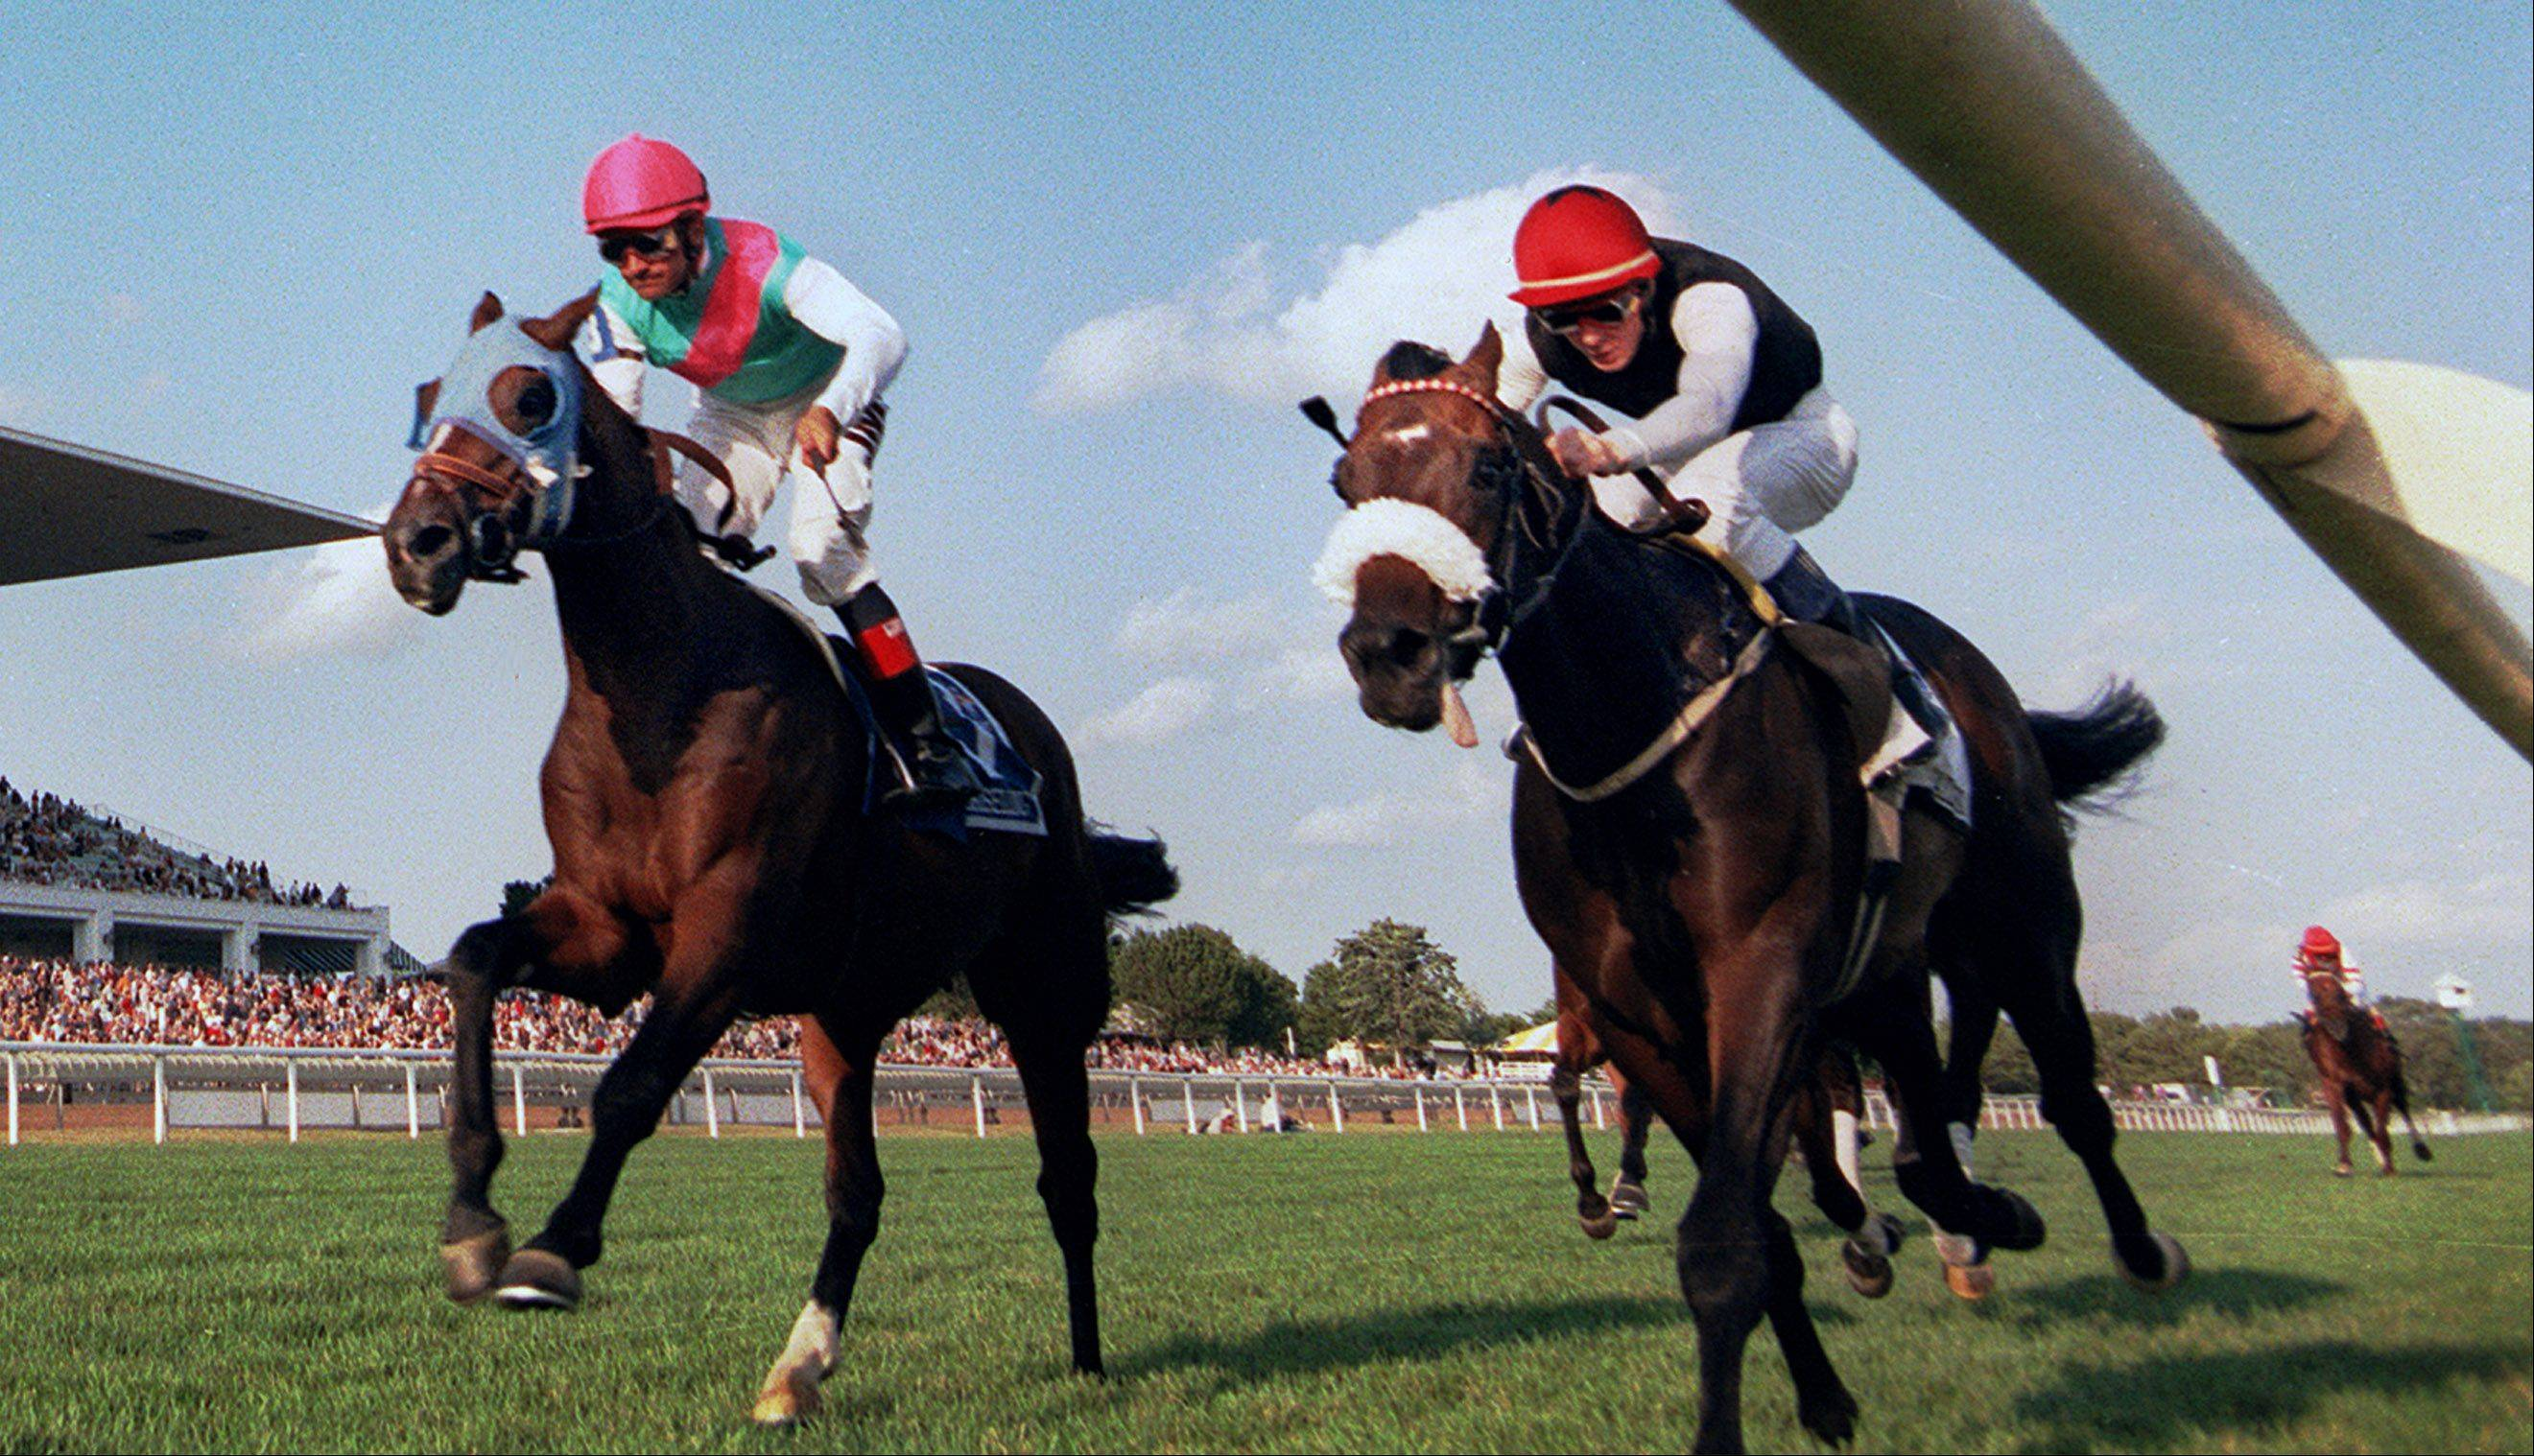 Chiselling left, and Jazz Beat right, to the finish in the Secretariat Stakes.